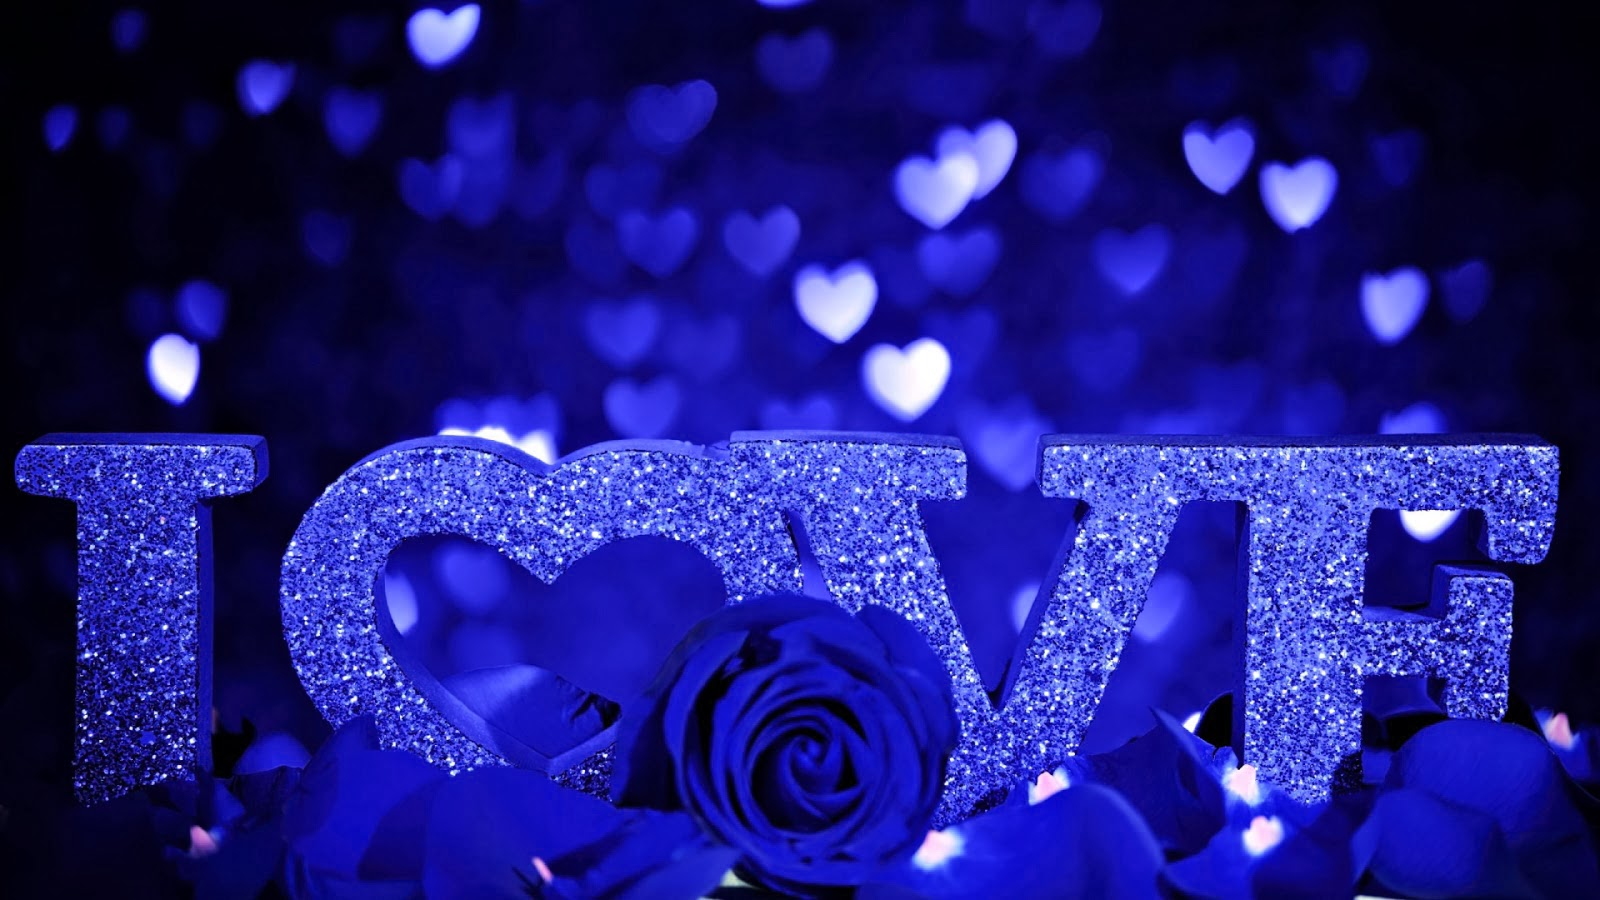 Eletragesi Blue Rose I Love You Images - Red Rose With Love Message , HD Wallpaper & Backgrounds